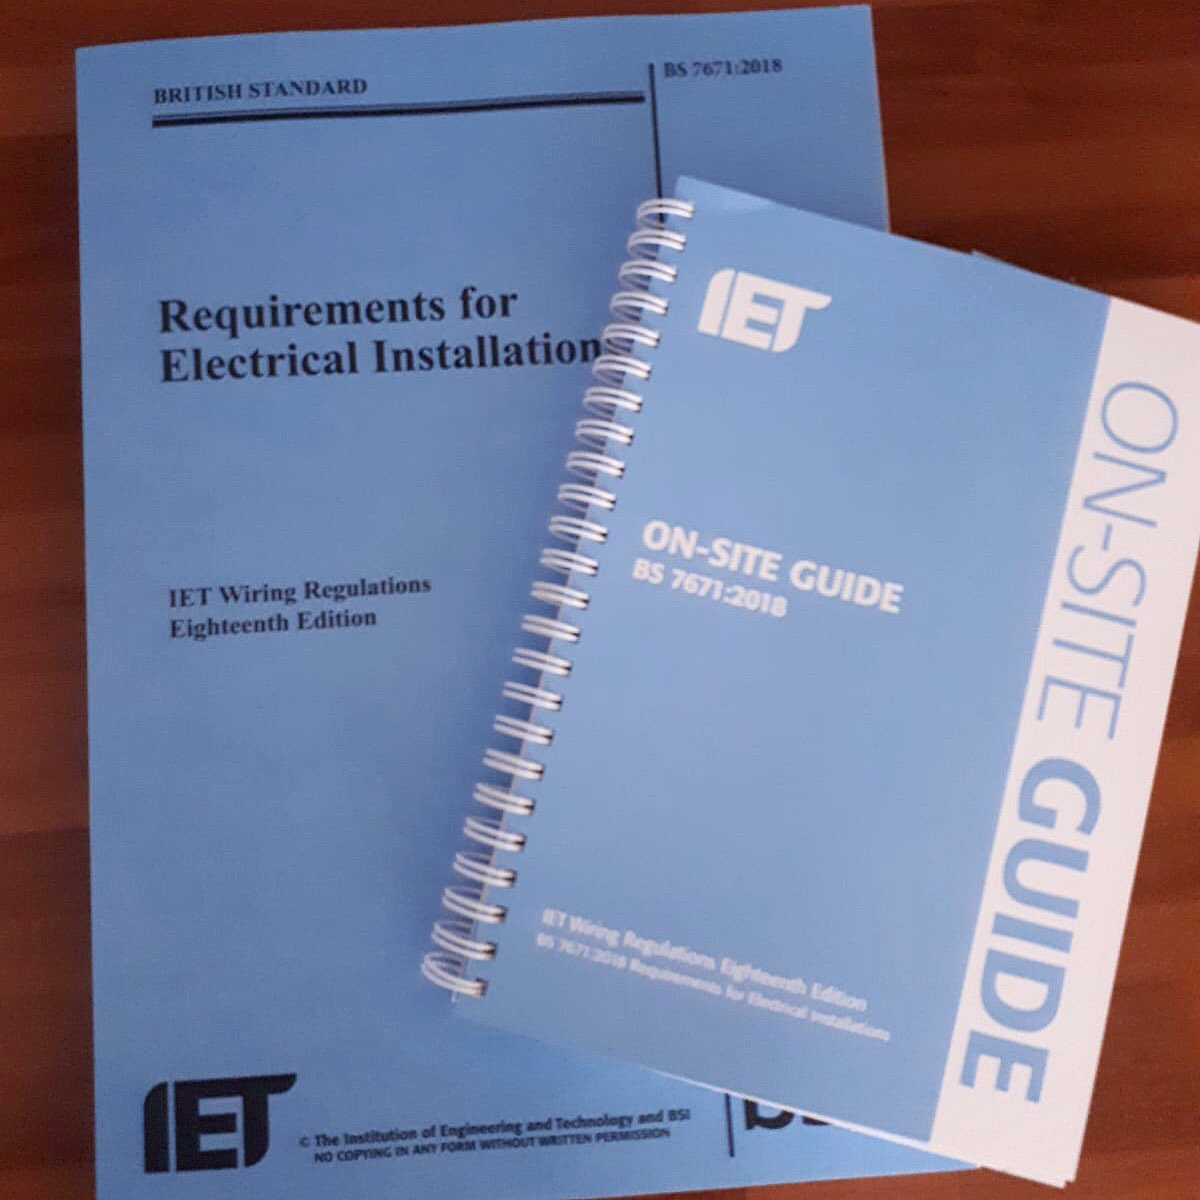 Wiringregulations Hashtag On Twitter Iet Wiring Regulations Book Electrician Electrics 18thedition Training Eca Education Eal Ealrecognised Pic Fieetmujjo